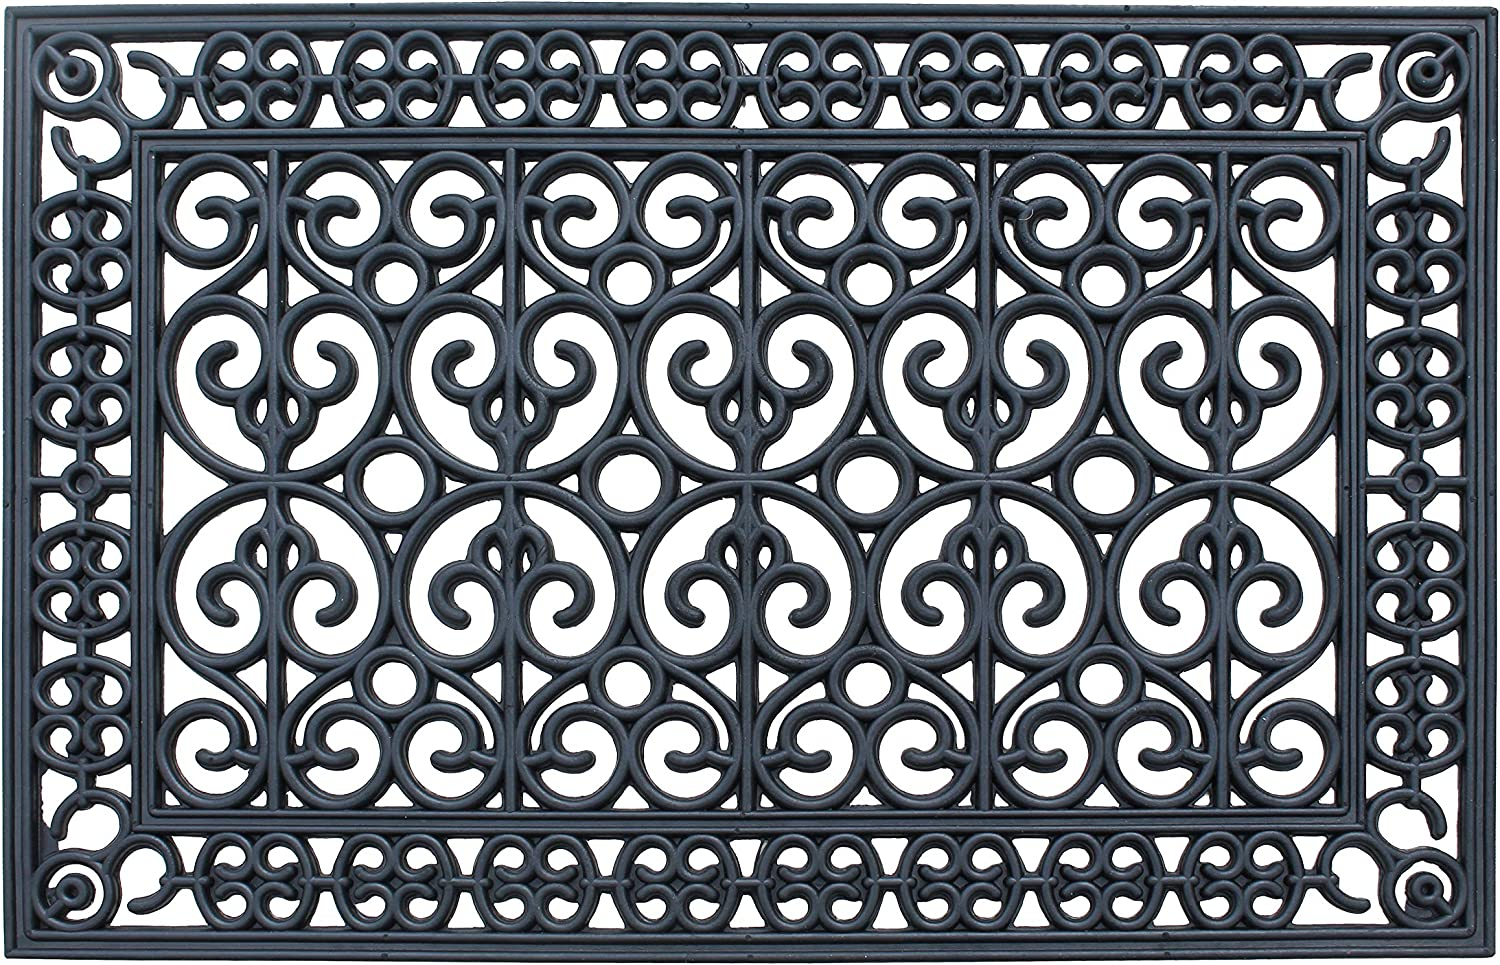 """A1 Home Collections A1HCCL67 First Impression Rubber, Beautifully Hand Finished, Doormat, 24"""" L X 36"""" W, Black Paisley 24"""" X 36"""""""